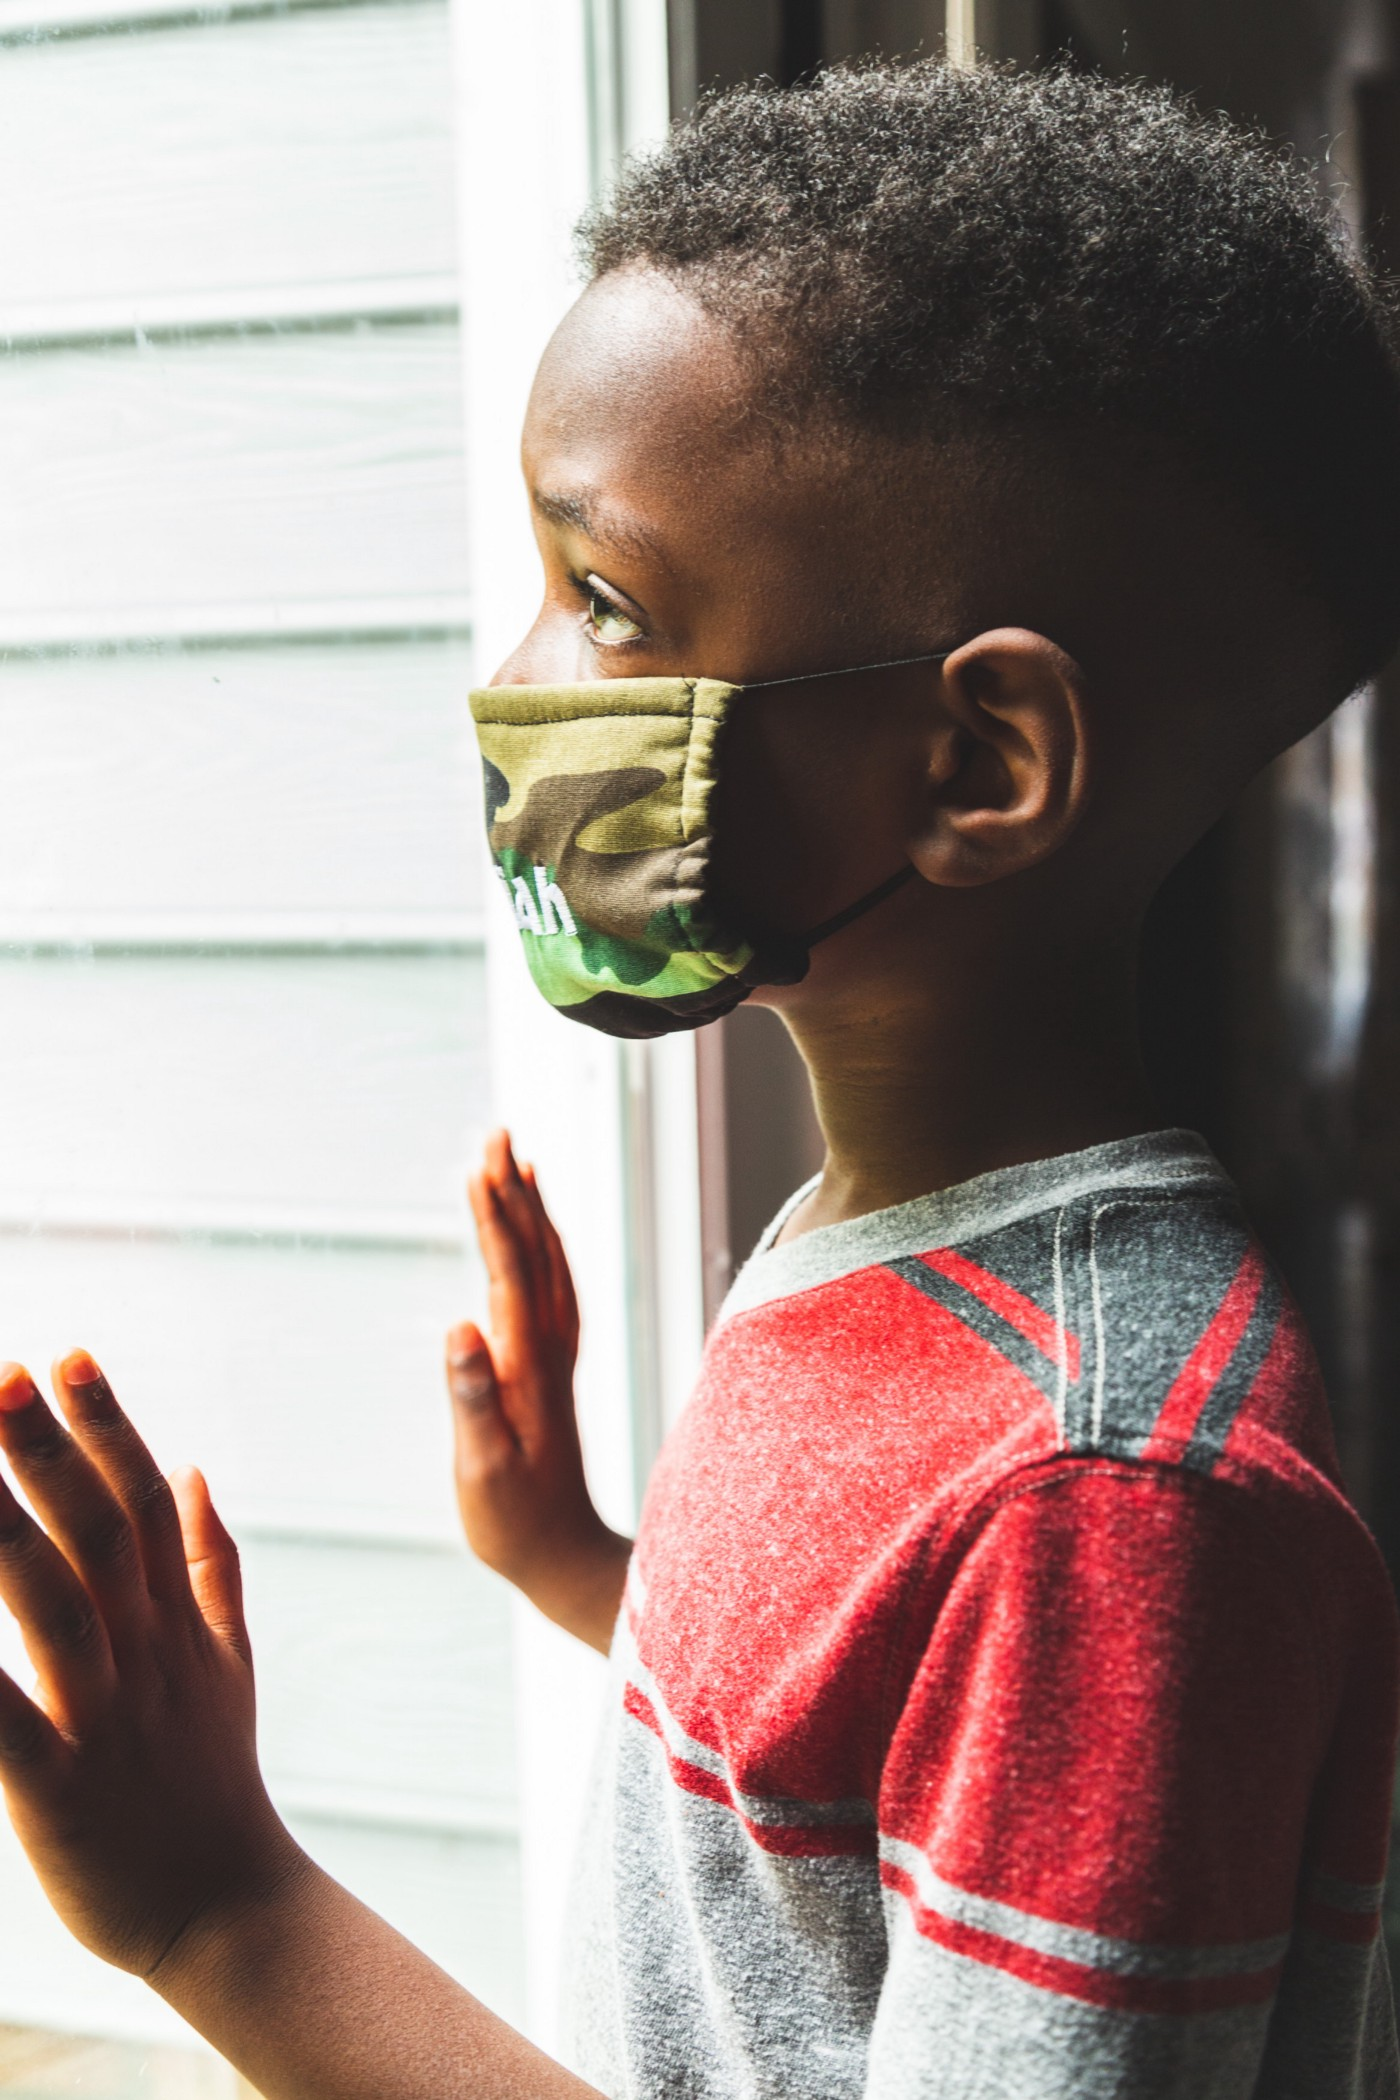 Boy wearing a face mask and looking out a glass door.